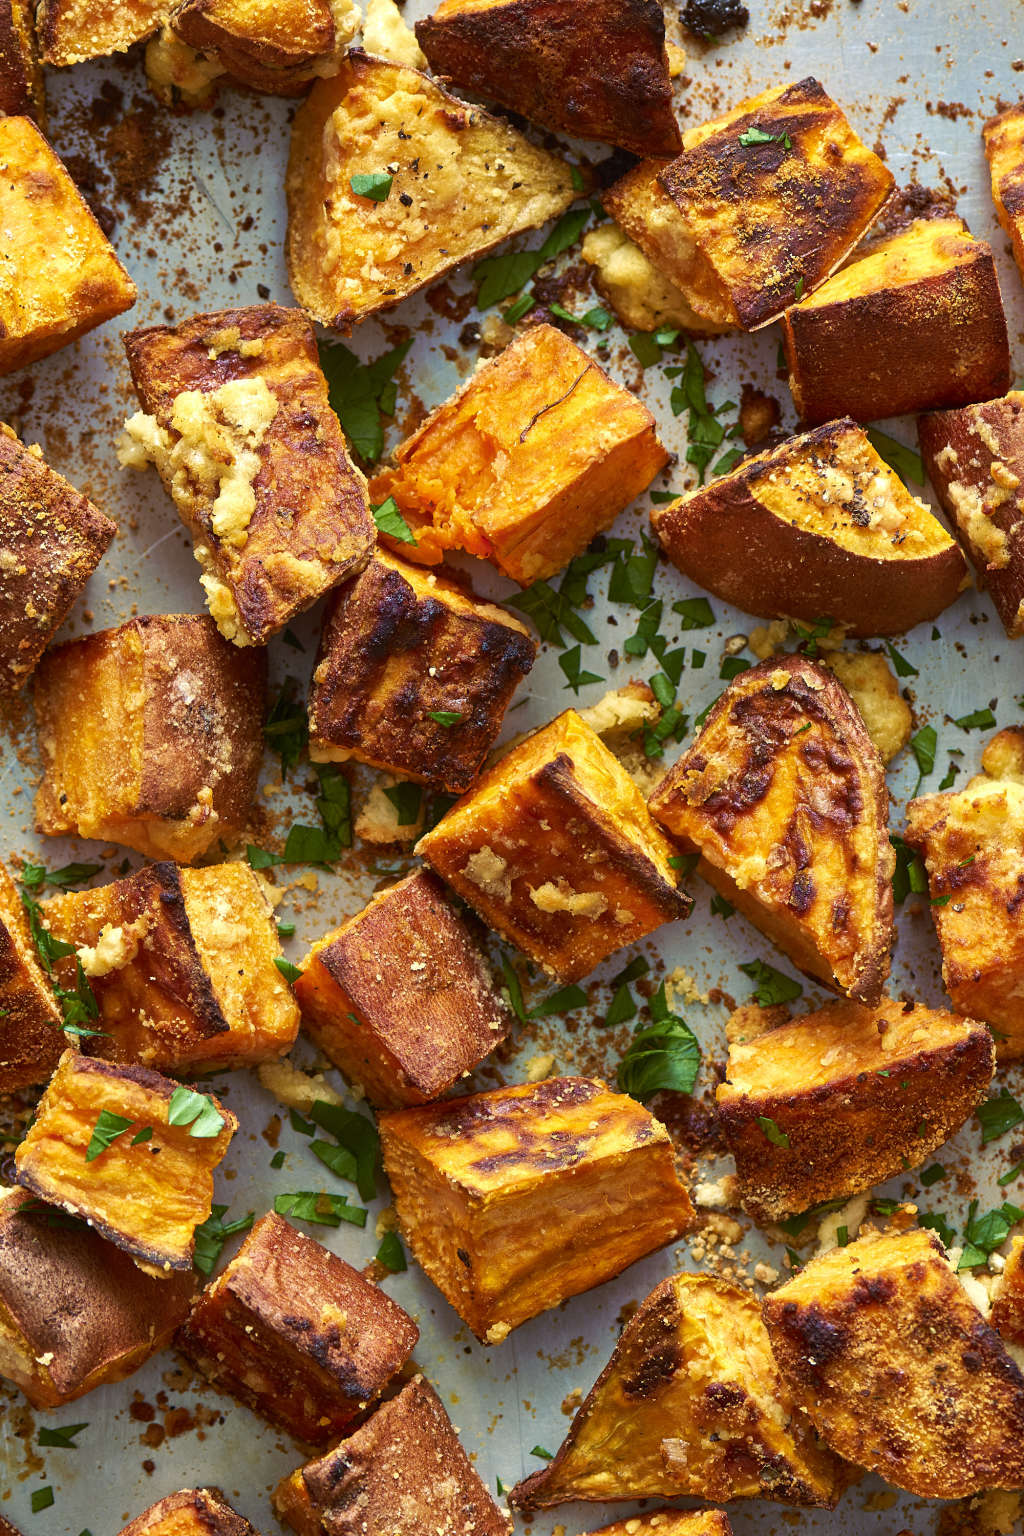 Here's How to Make Your Roasted Veggies Mind-Blowing